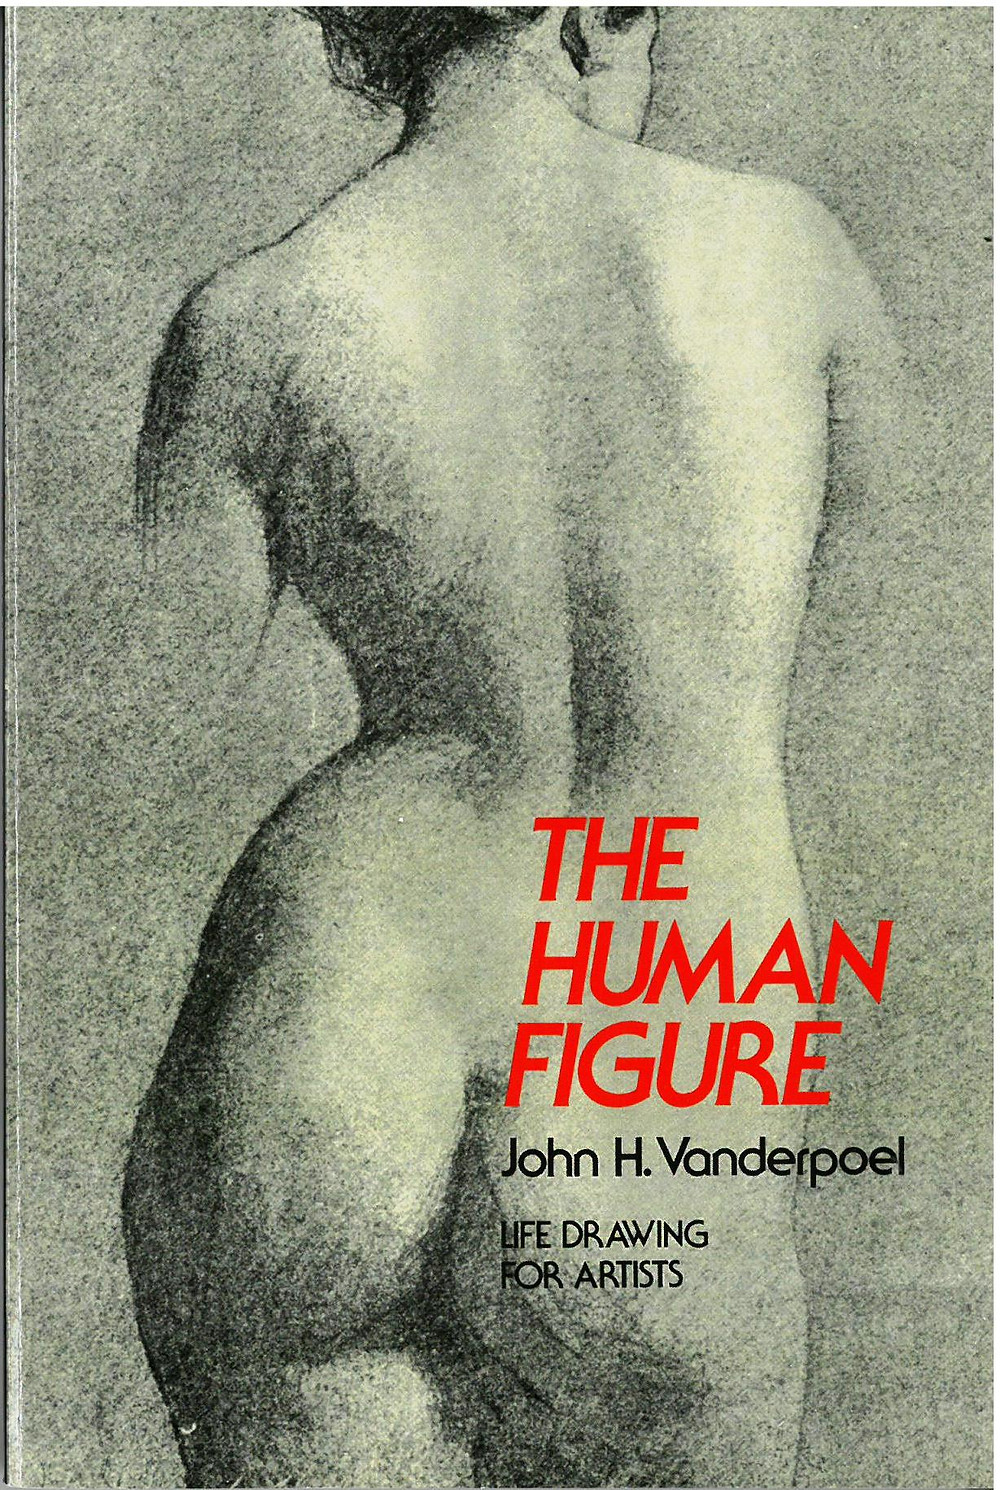 The Human Figure cover, scan